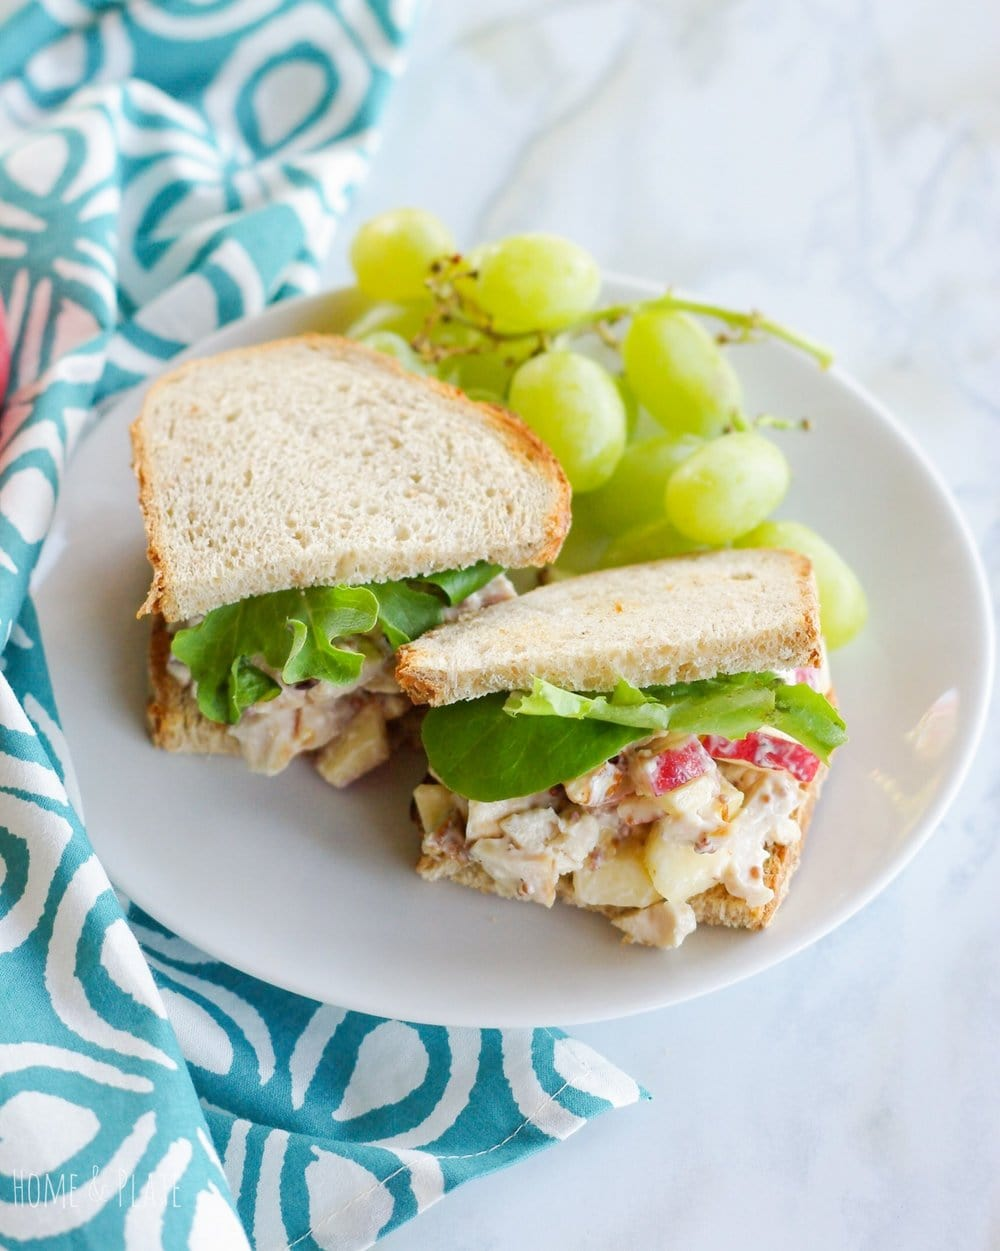 Orchard Apple Chicken Salad | www.homeandplate.com | Whip up a delicious lunch of rotisserie chicken, orchard apples and nutty pecans in this homemade orchard apple chicken salad.